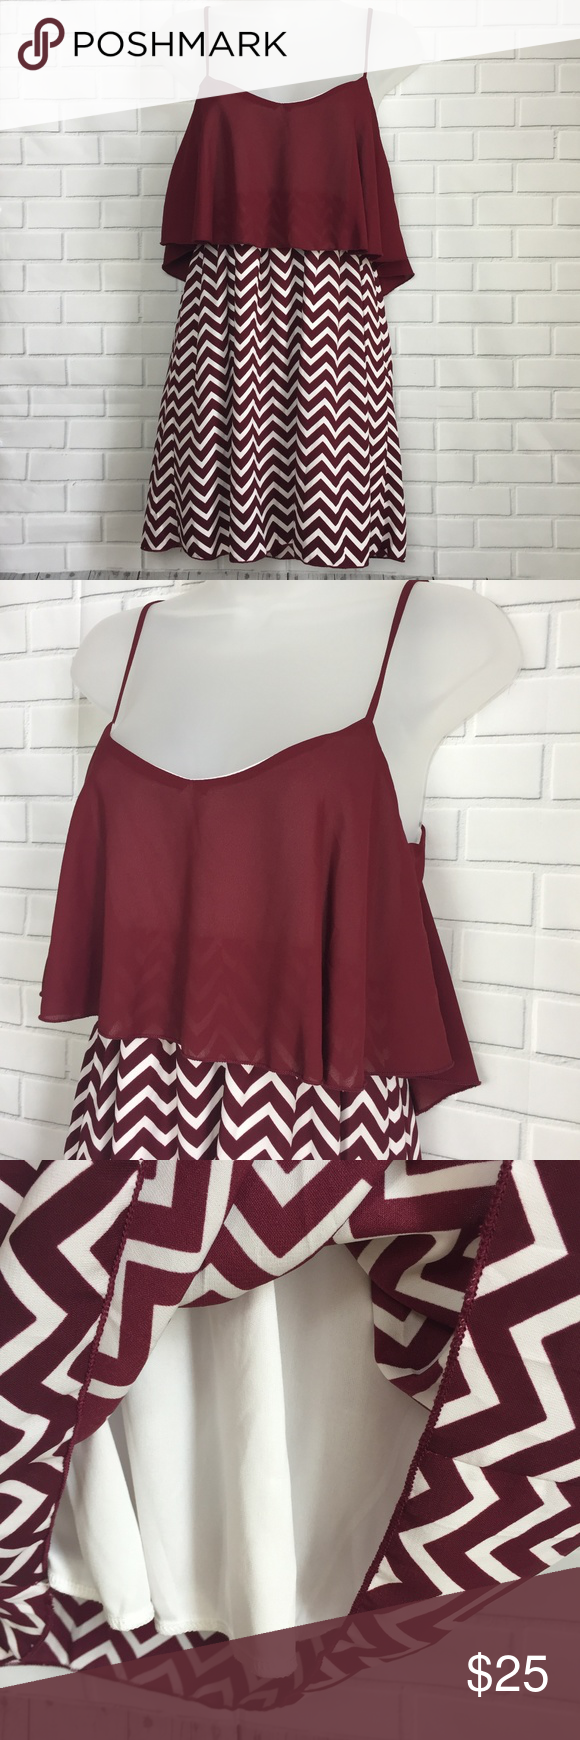 Game Day Dress Maroon and White Chevron Size Small Brand new maroon and white  chevron print c54257162